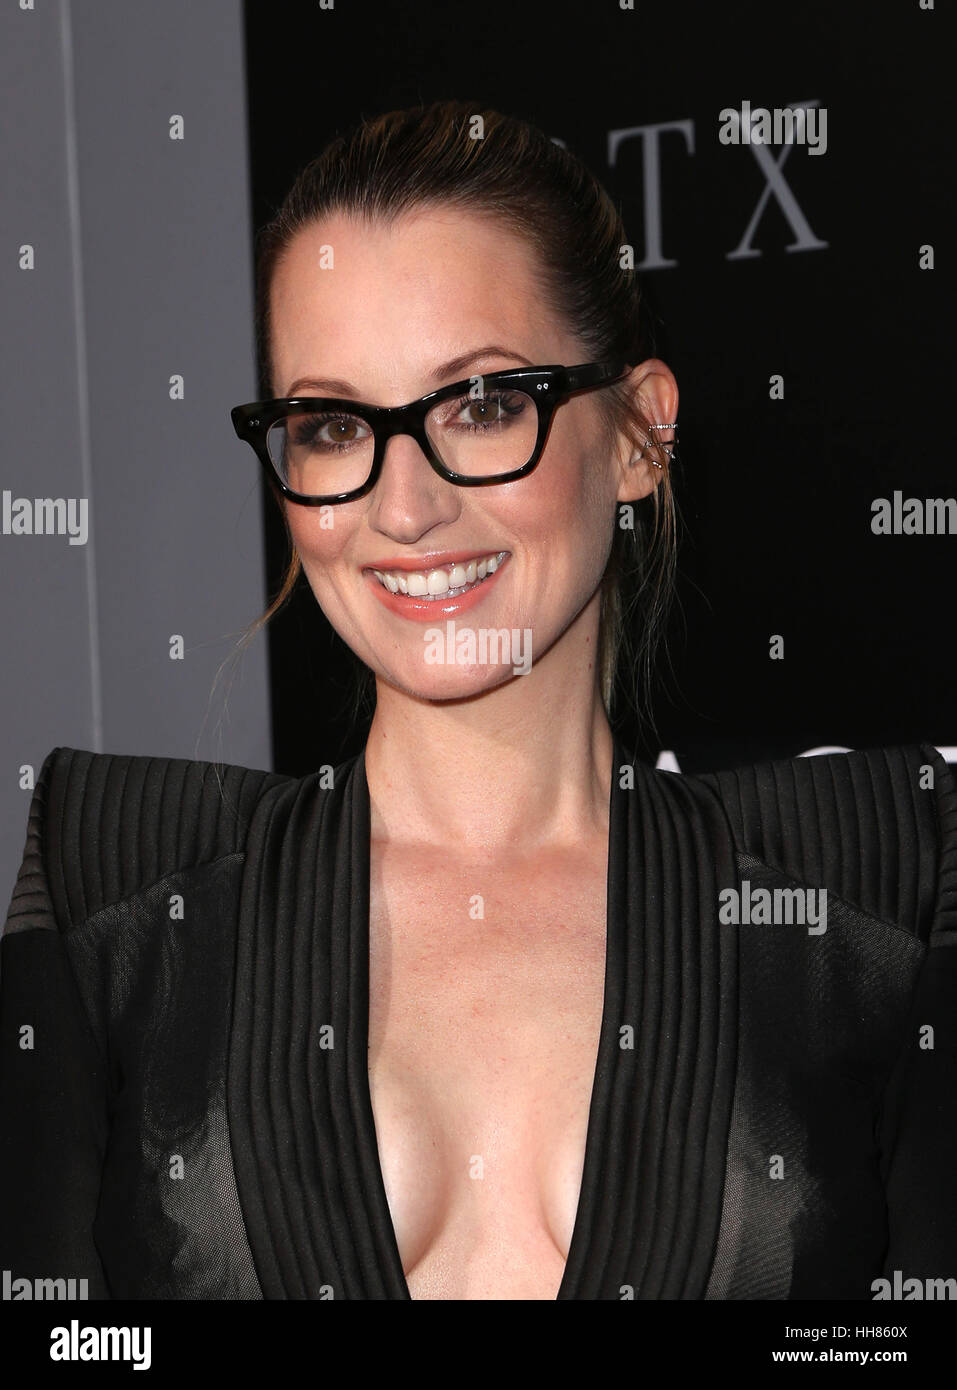 Ingrid Michaelson nudes (96 pics), Is a cute Topless, Snapchat, see through 2017